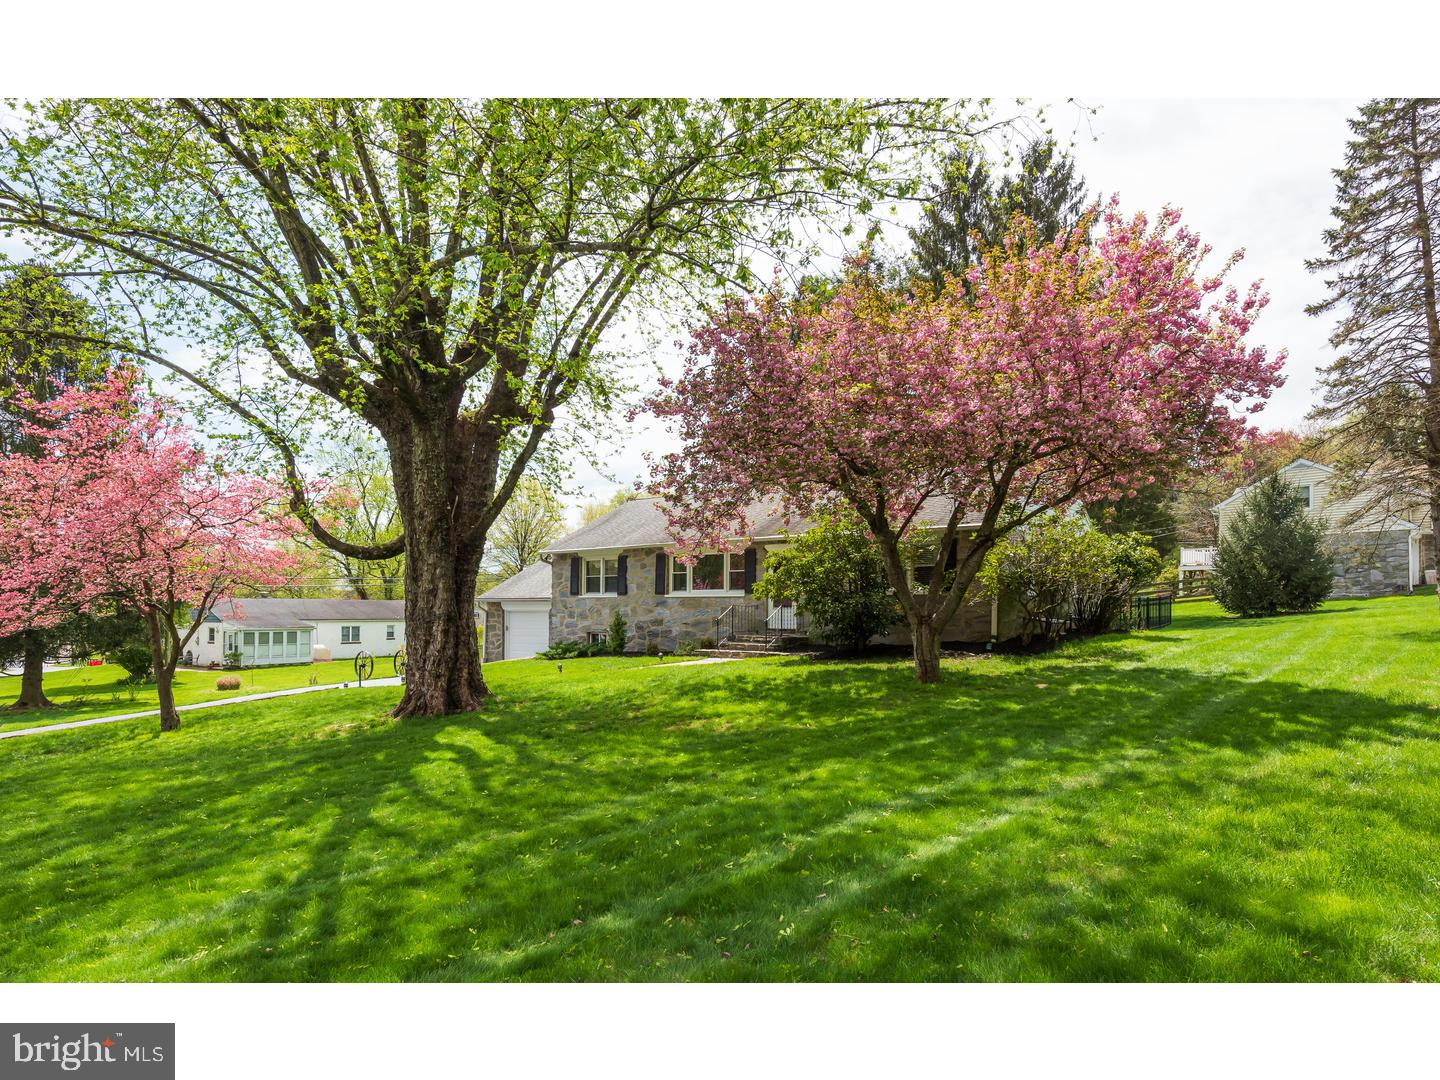 16 N Garden Circle West Chester Pa 19382 Sold Listing Mls